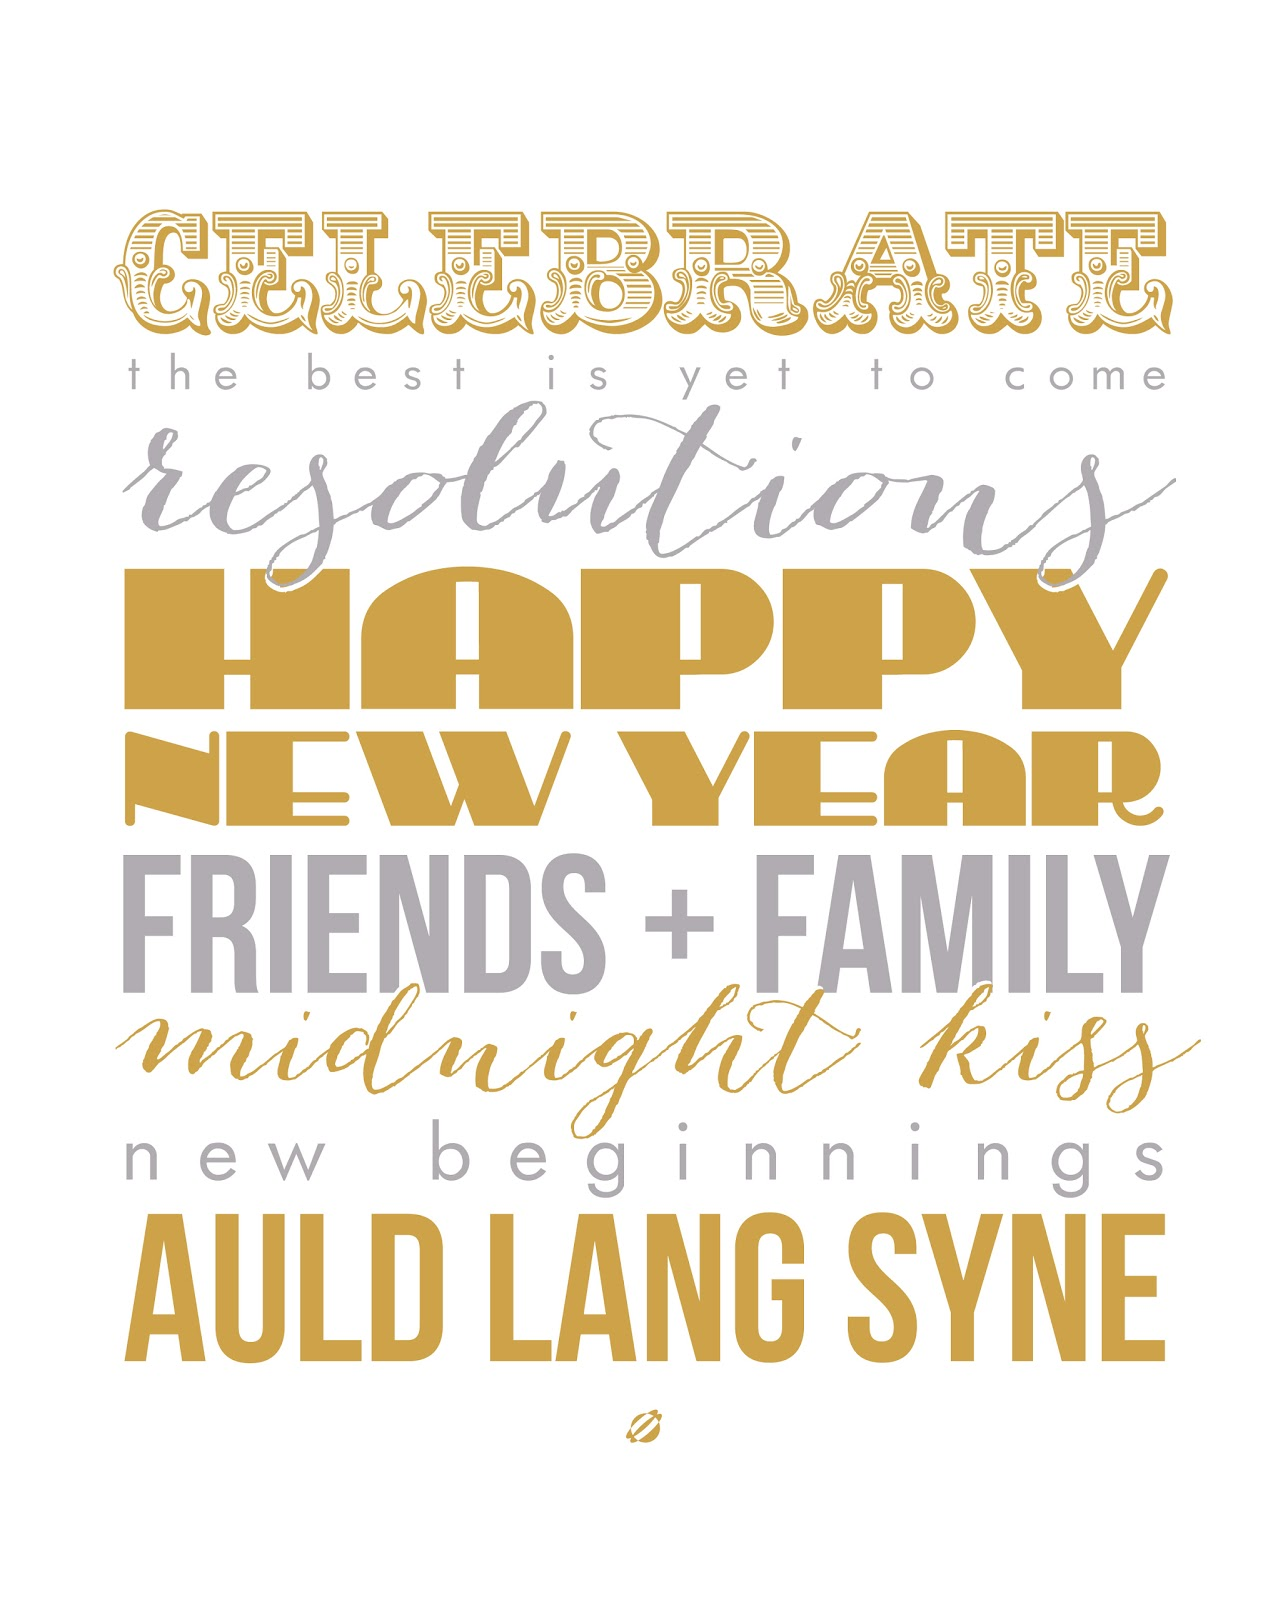 20 New Years Free Printables